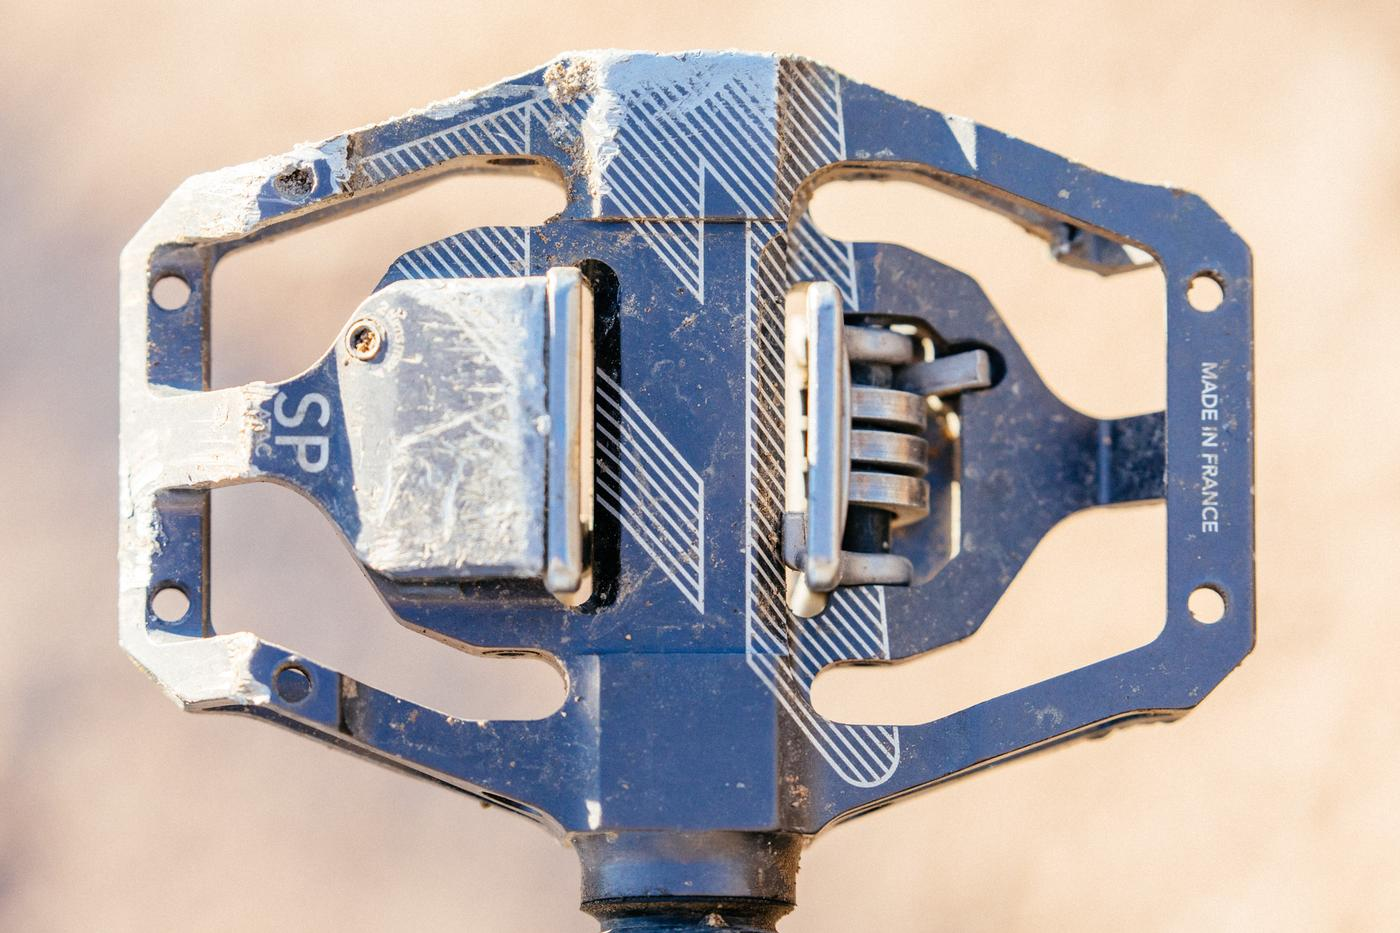 Time's Speciale MTB Pedals are a Much Needed Update